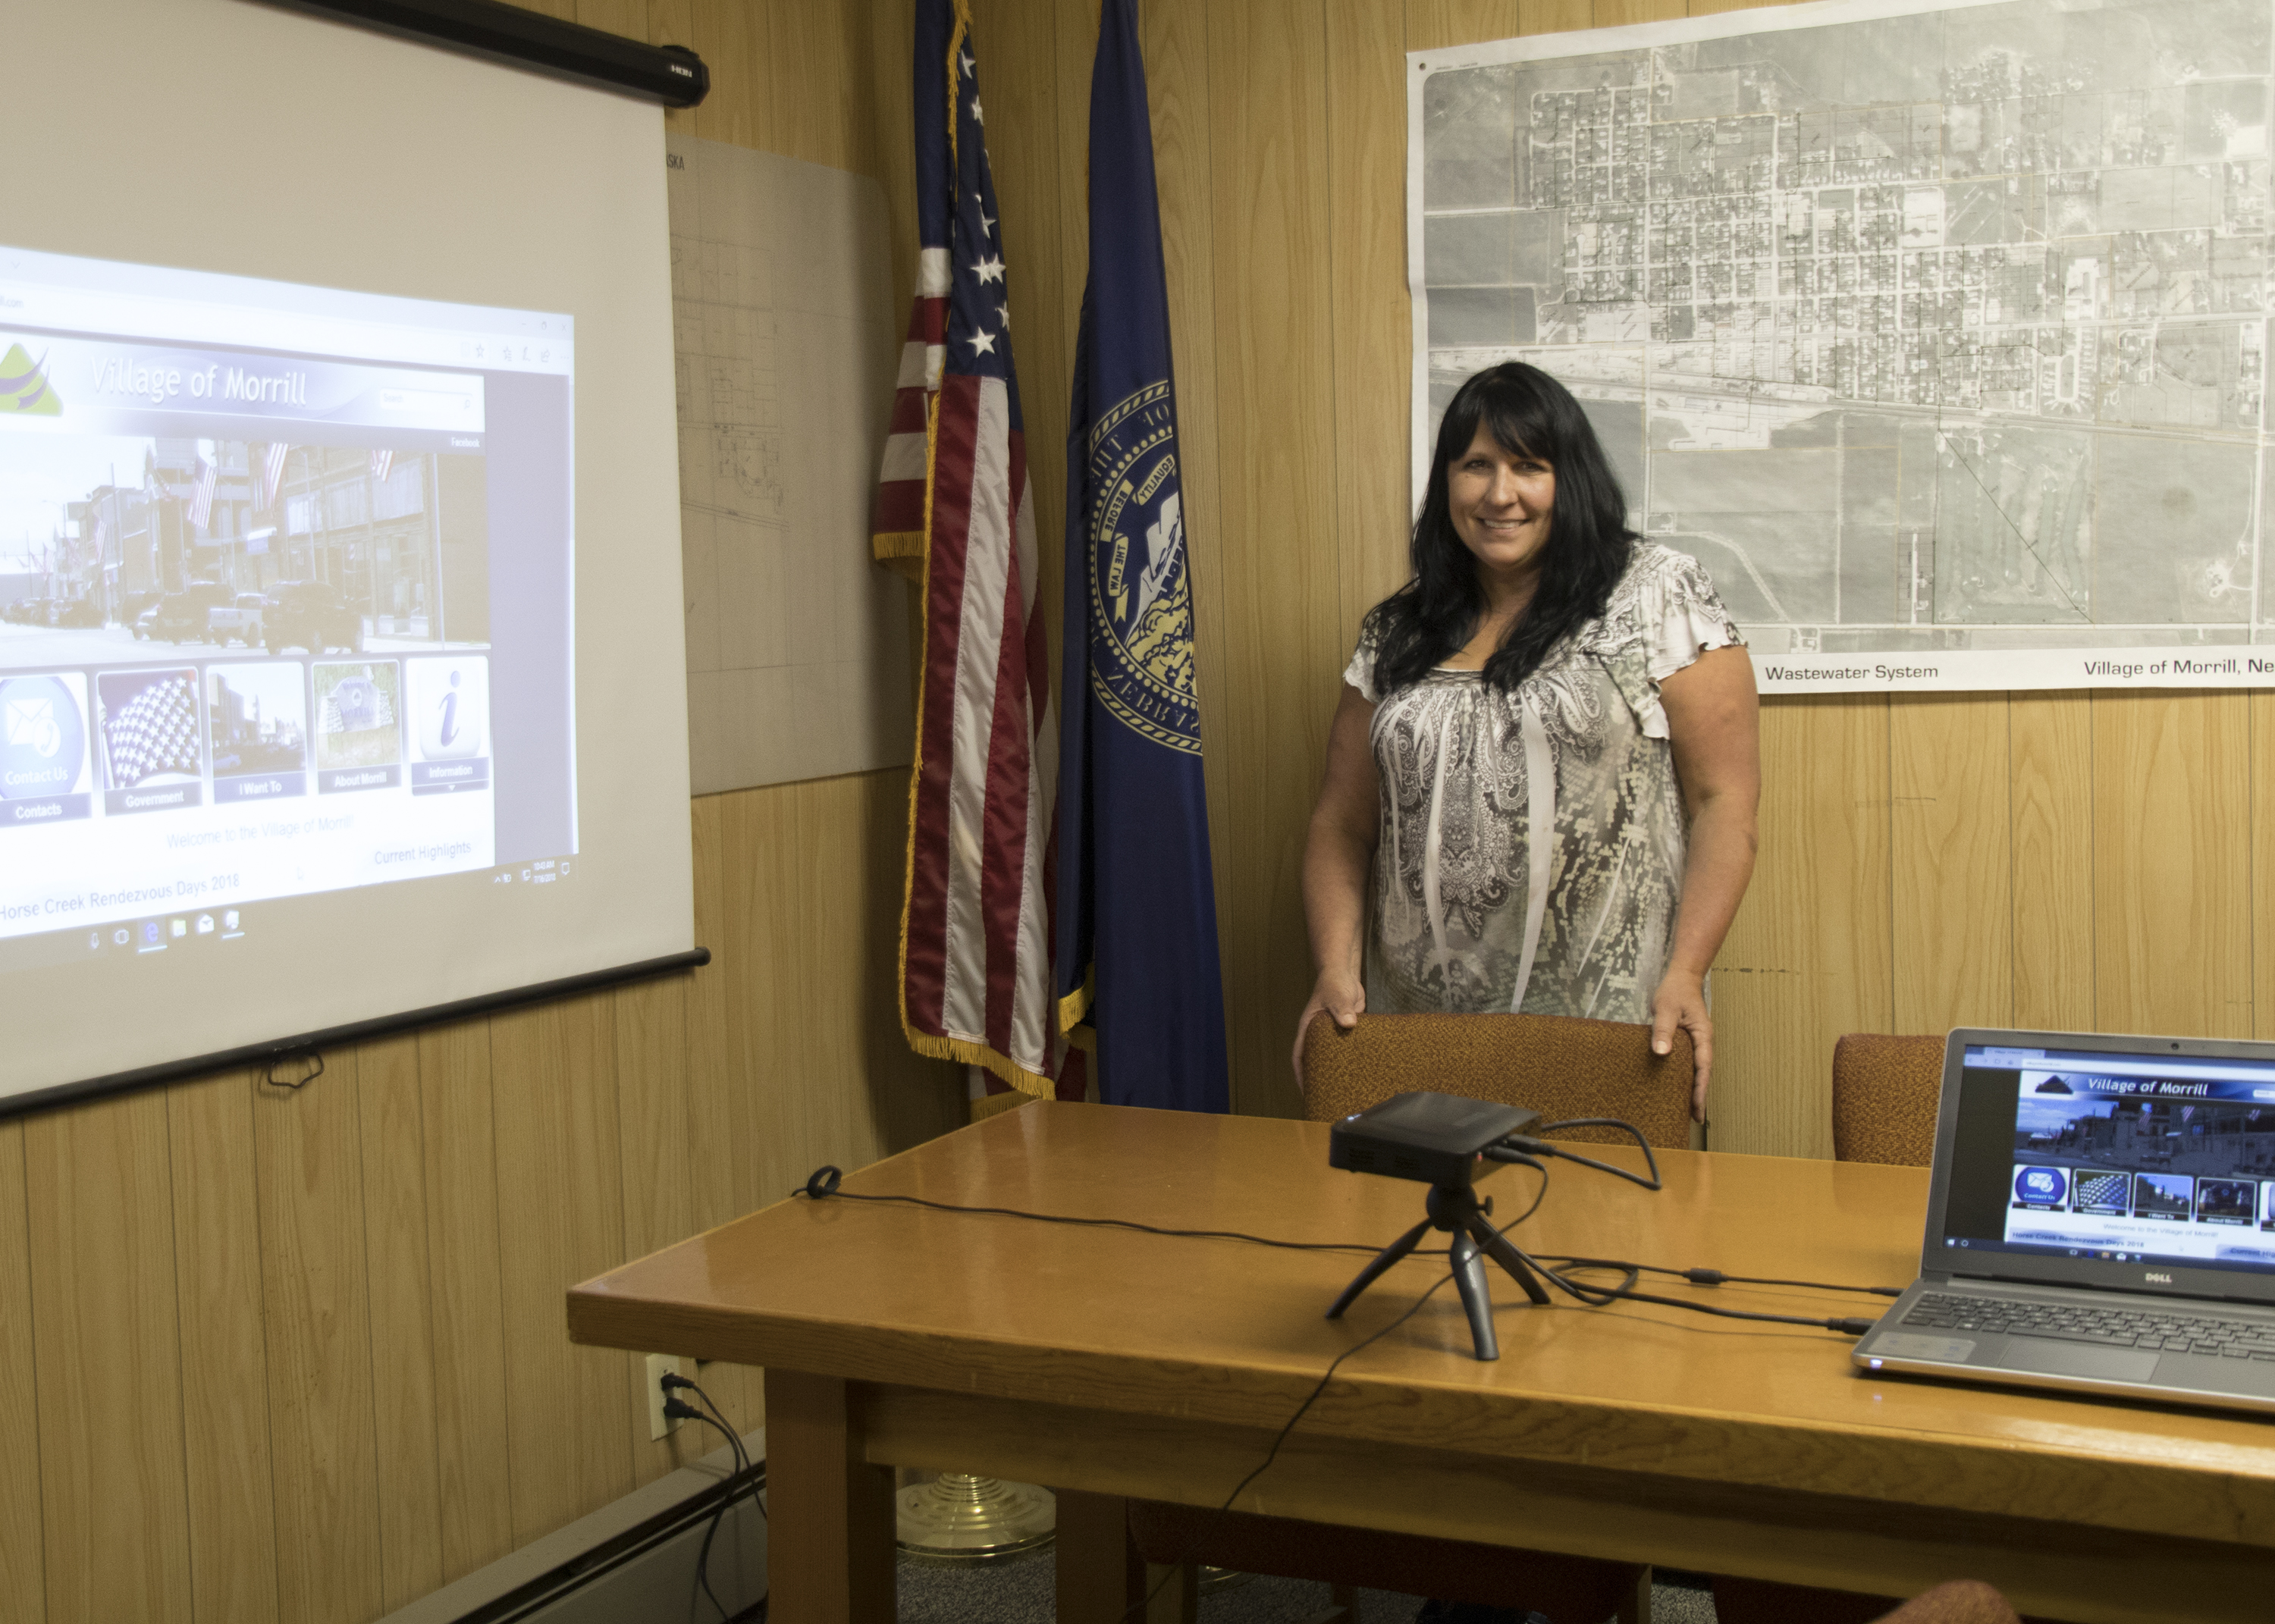 Village of Morrill makes use of new projector